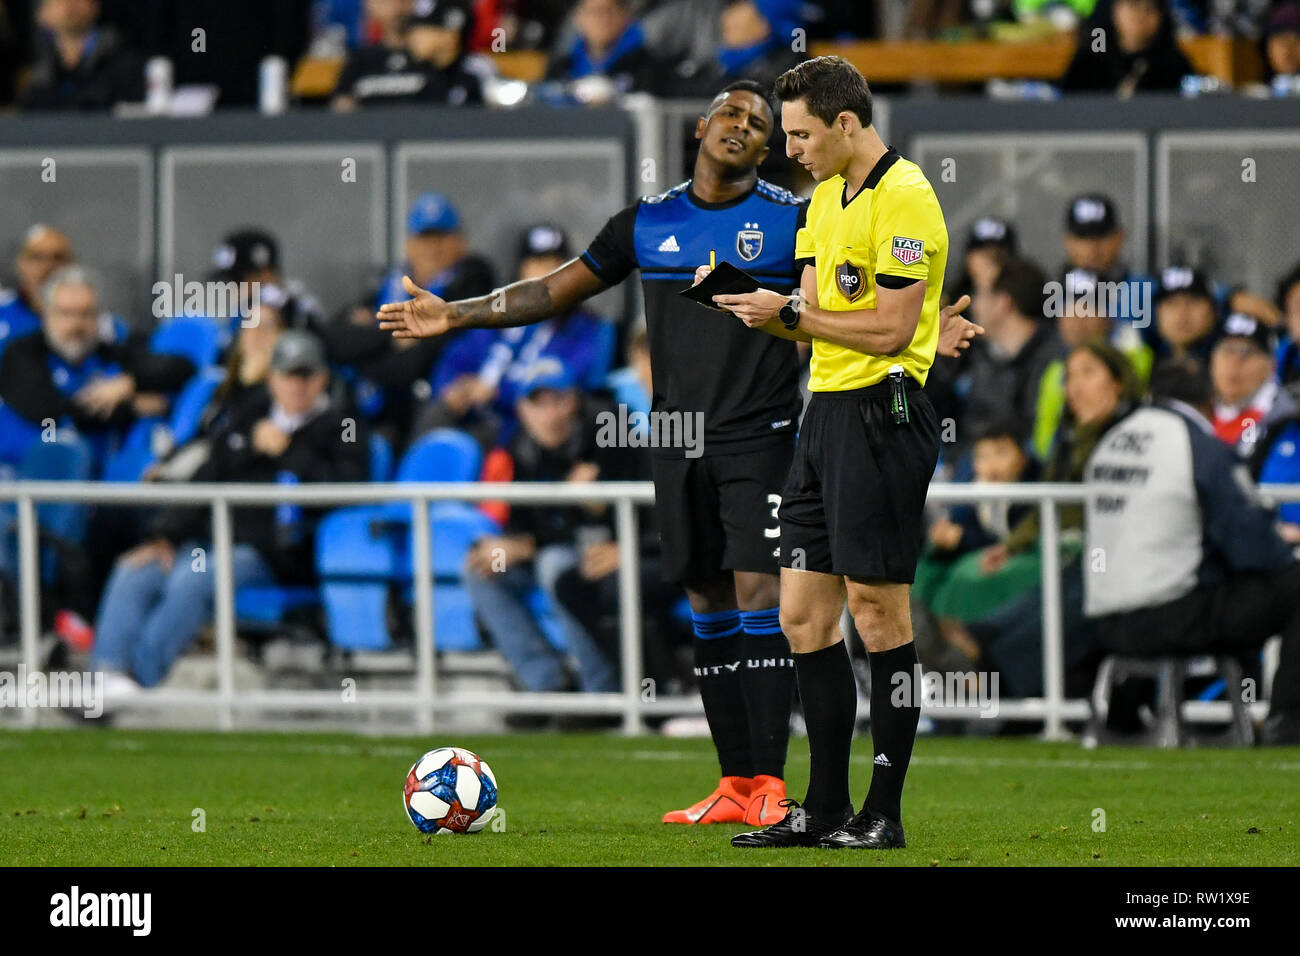 a9365c0d30f San Jose Earthquakes defender Harold Cummings (31) is not particularly  happy with an official during the MLS game between the Montreal Impact and  the San ...